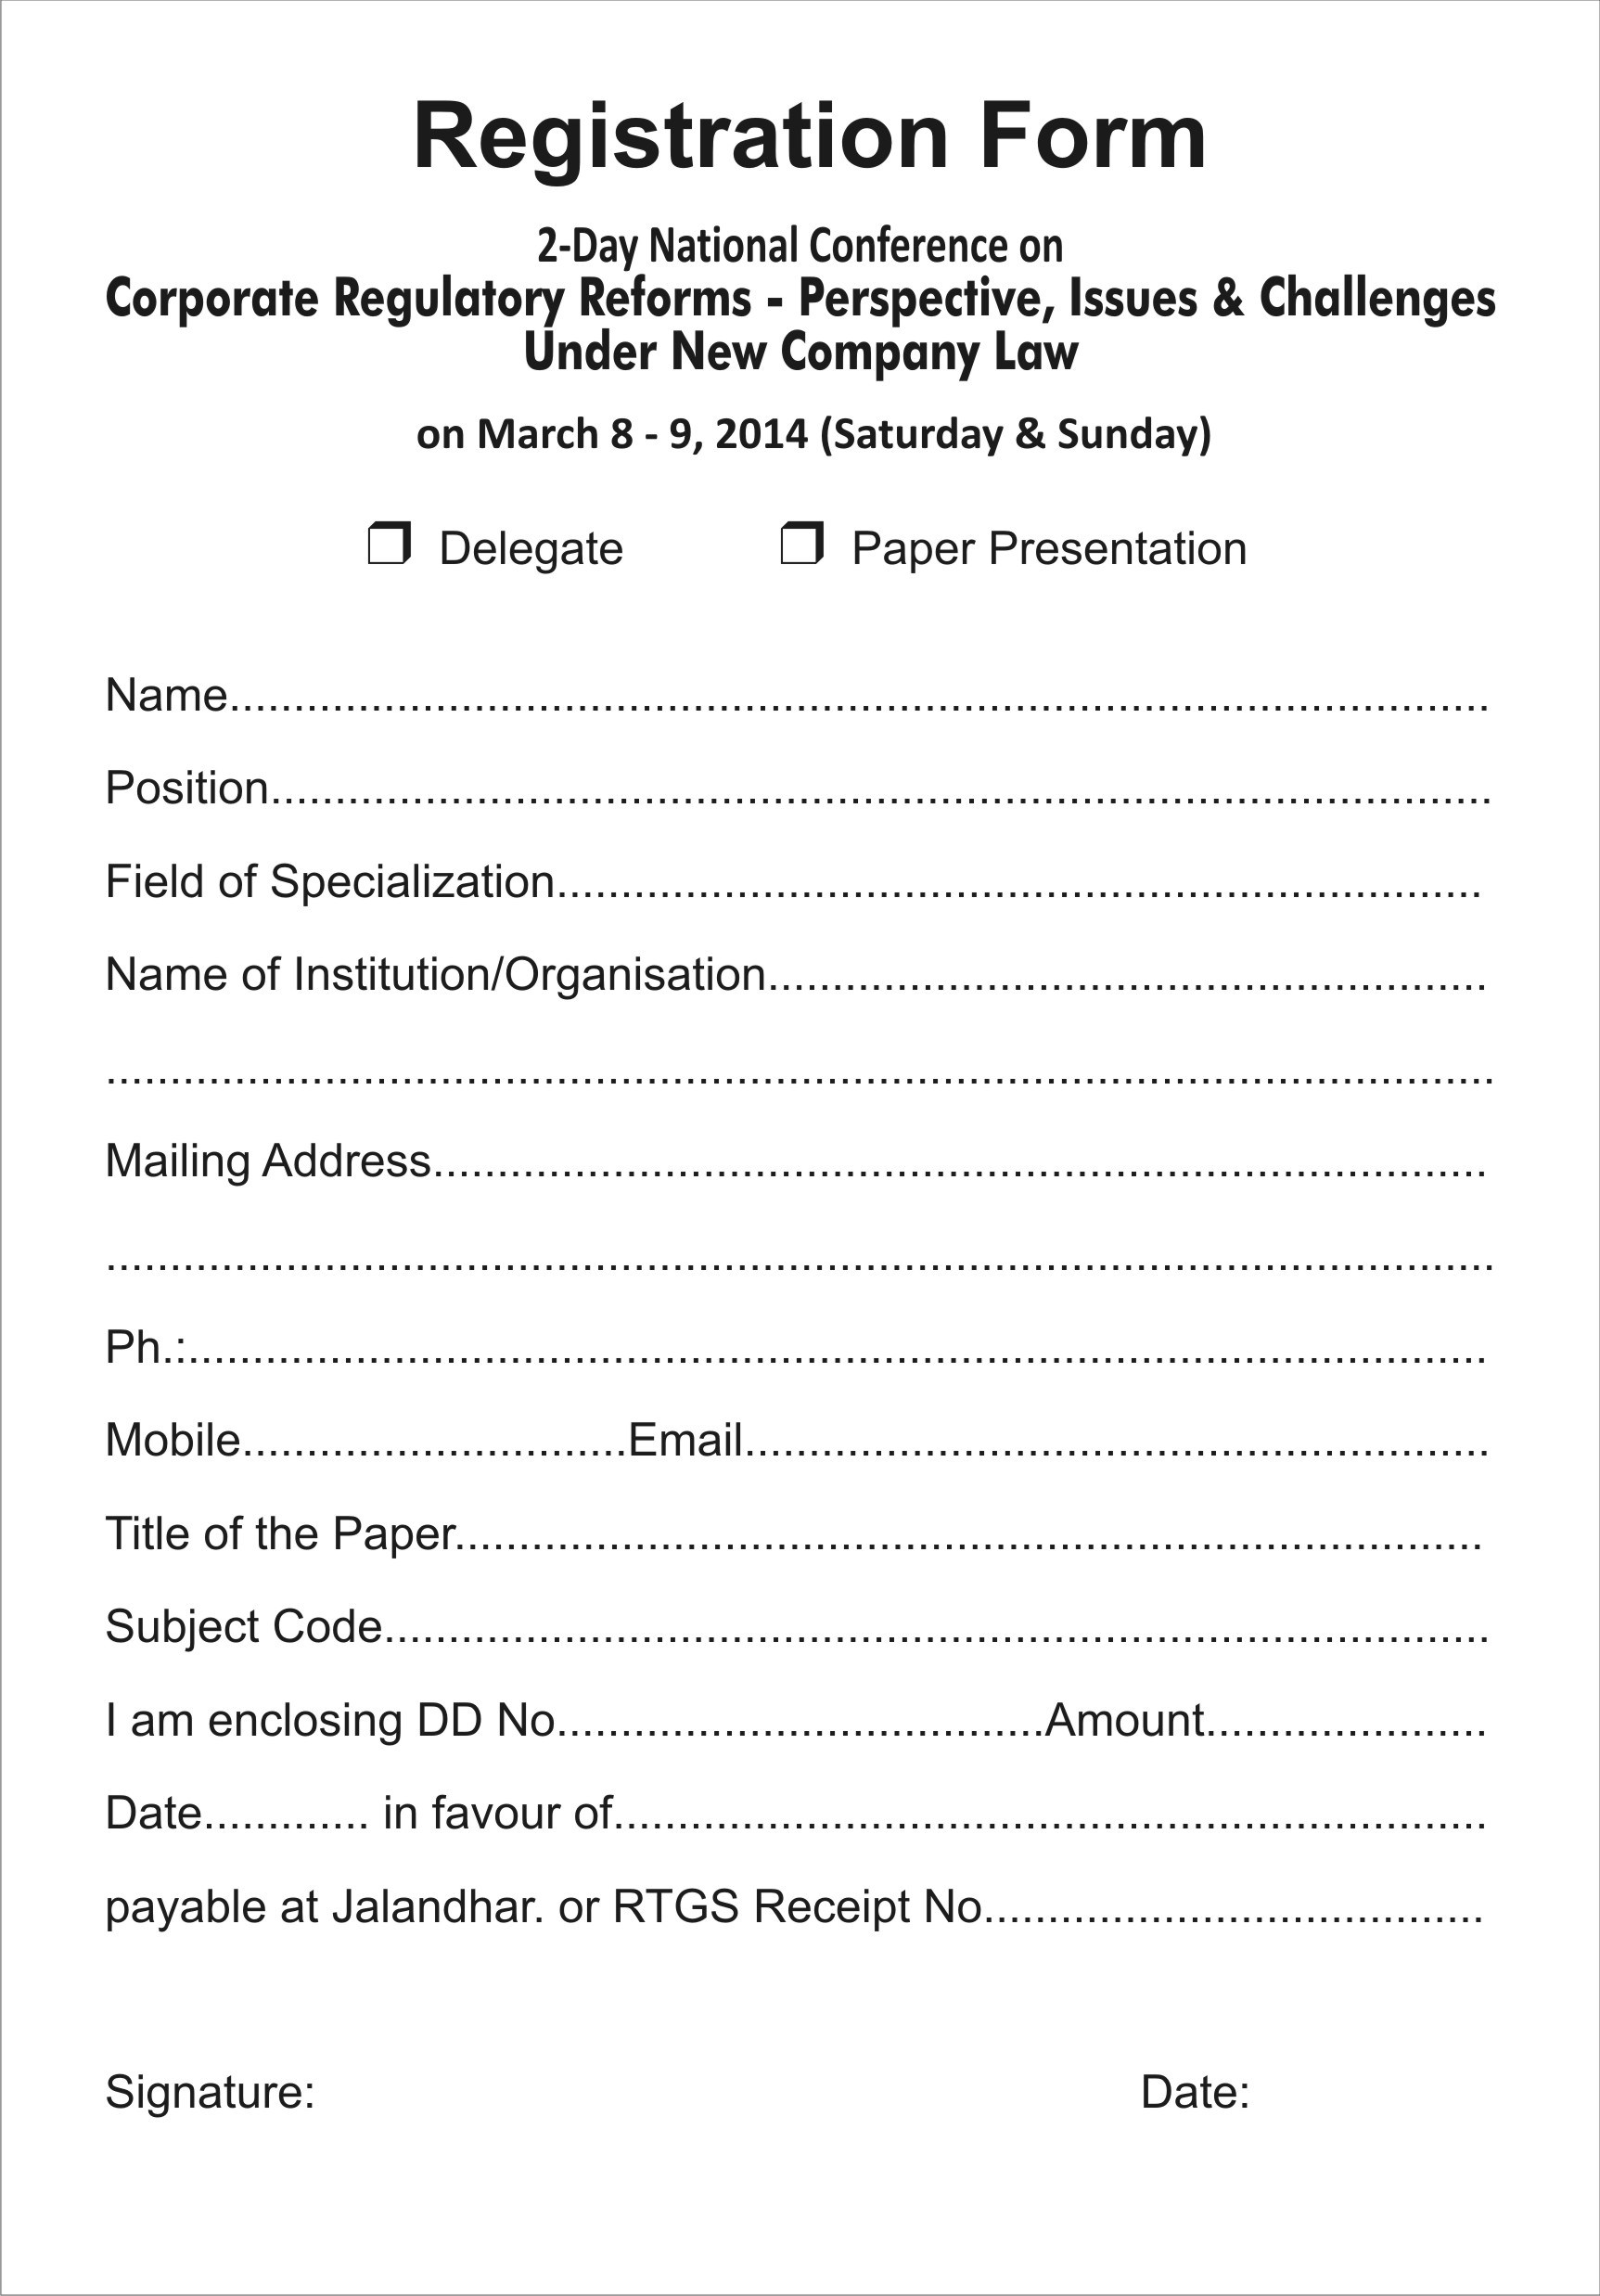 photograph about Printable Registration Form Template referred to as Free of charge Printable Registration Style Template store fresh new